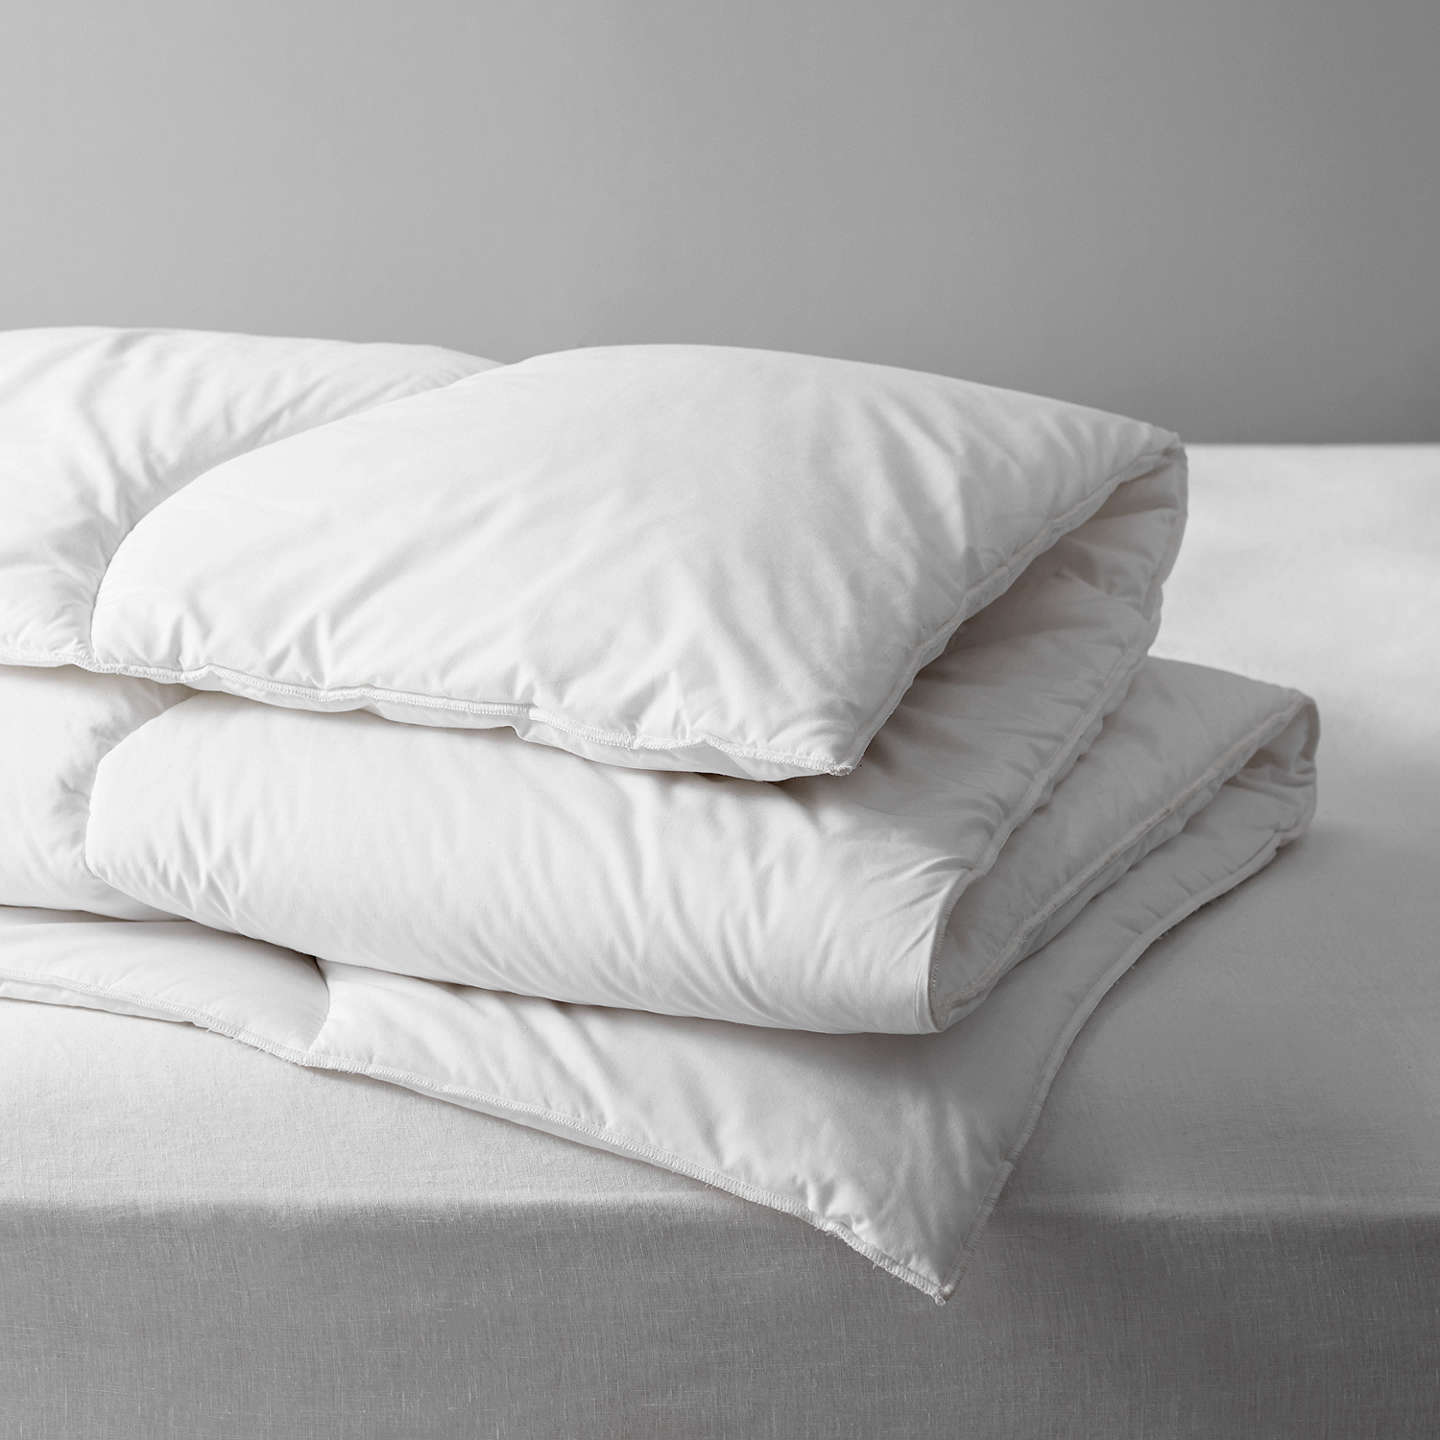 BuyJohn Lewis The Basics Microfibre Duvets, 13.5 Tog, Single Online at johnlewis.com